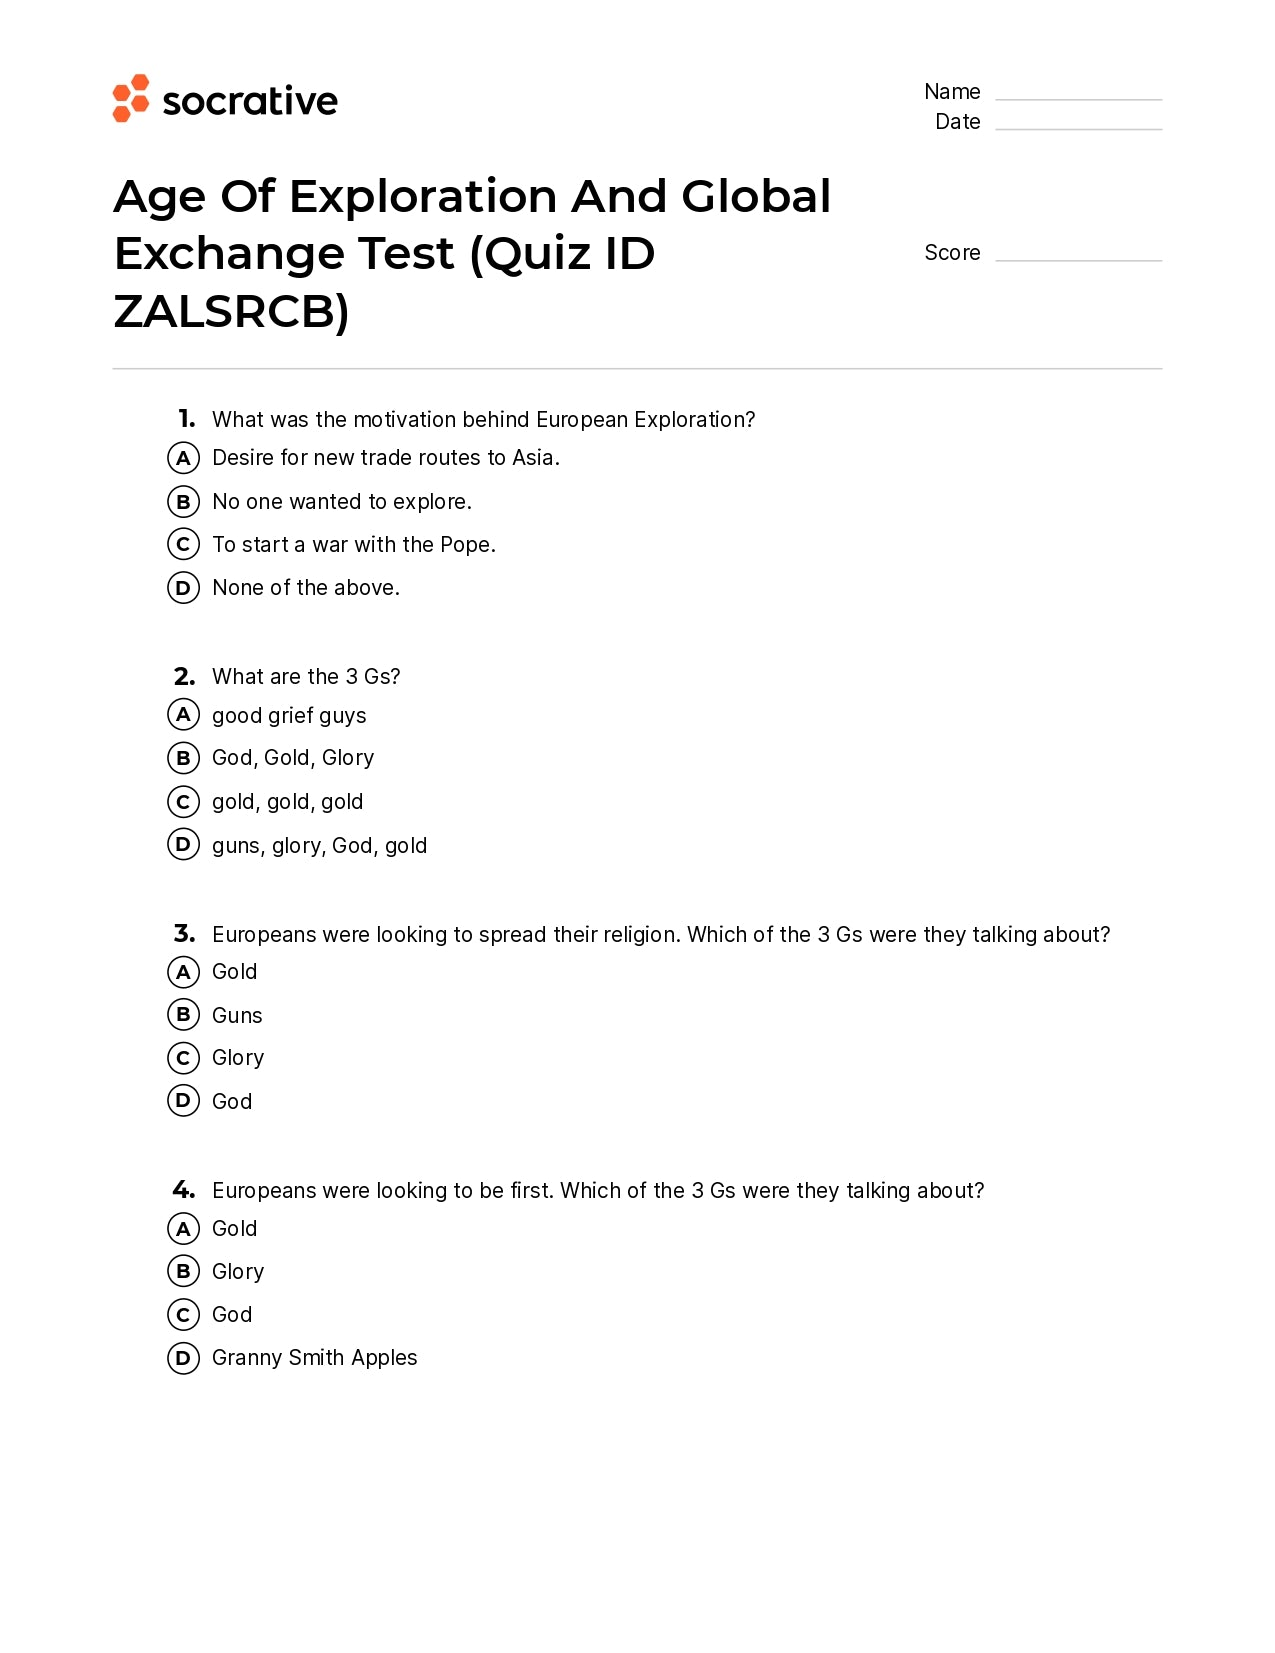 Age Of Exploration And Global Exchange Test